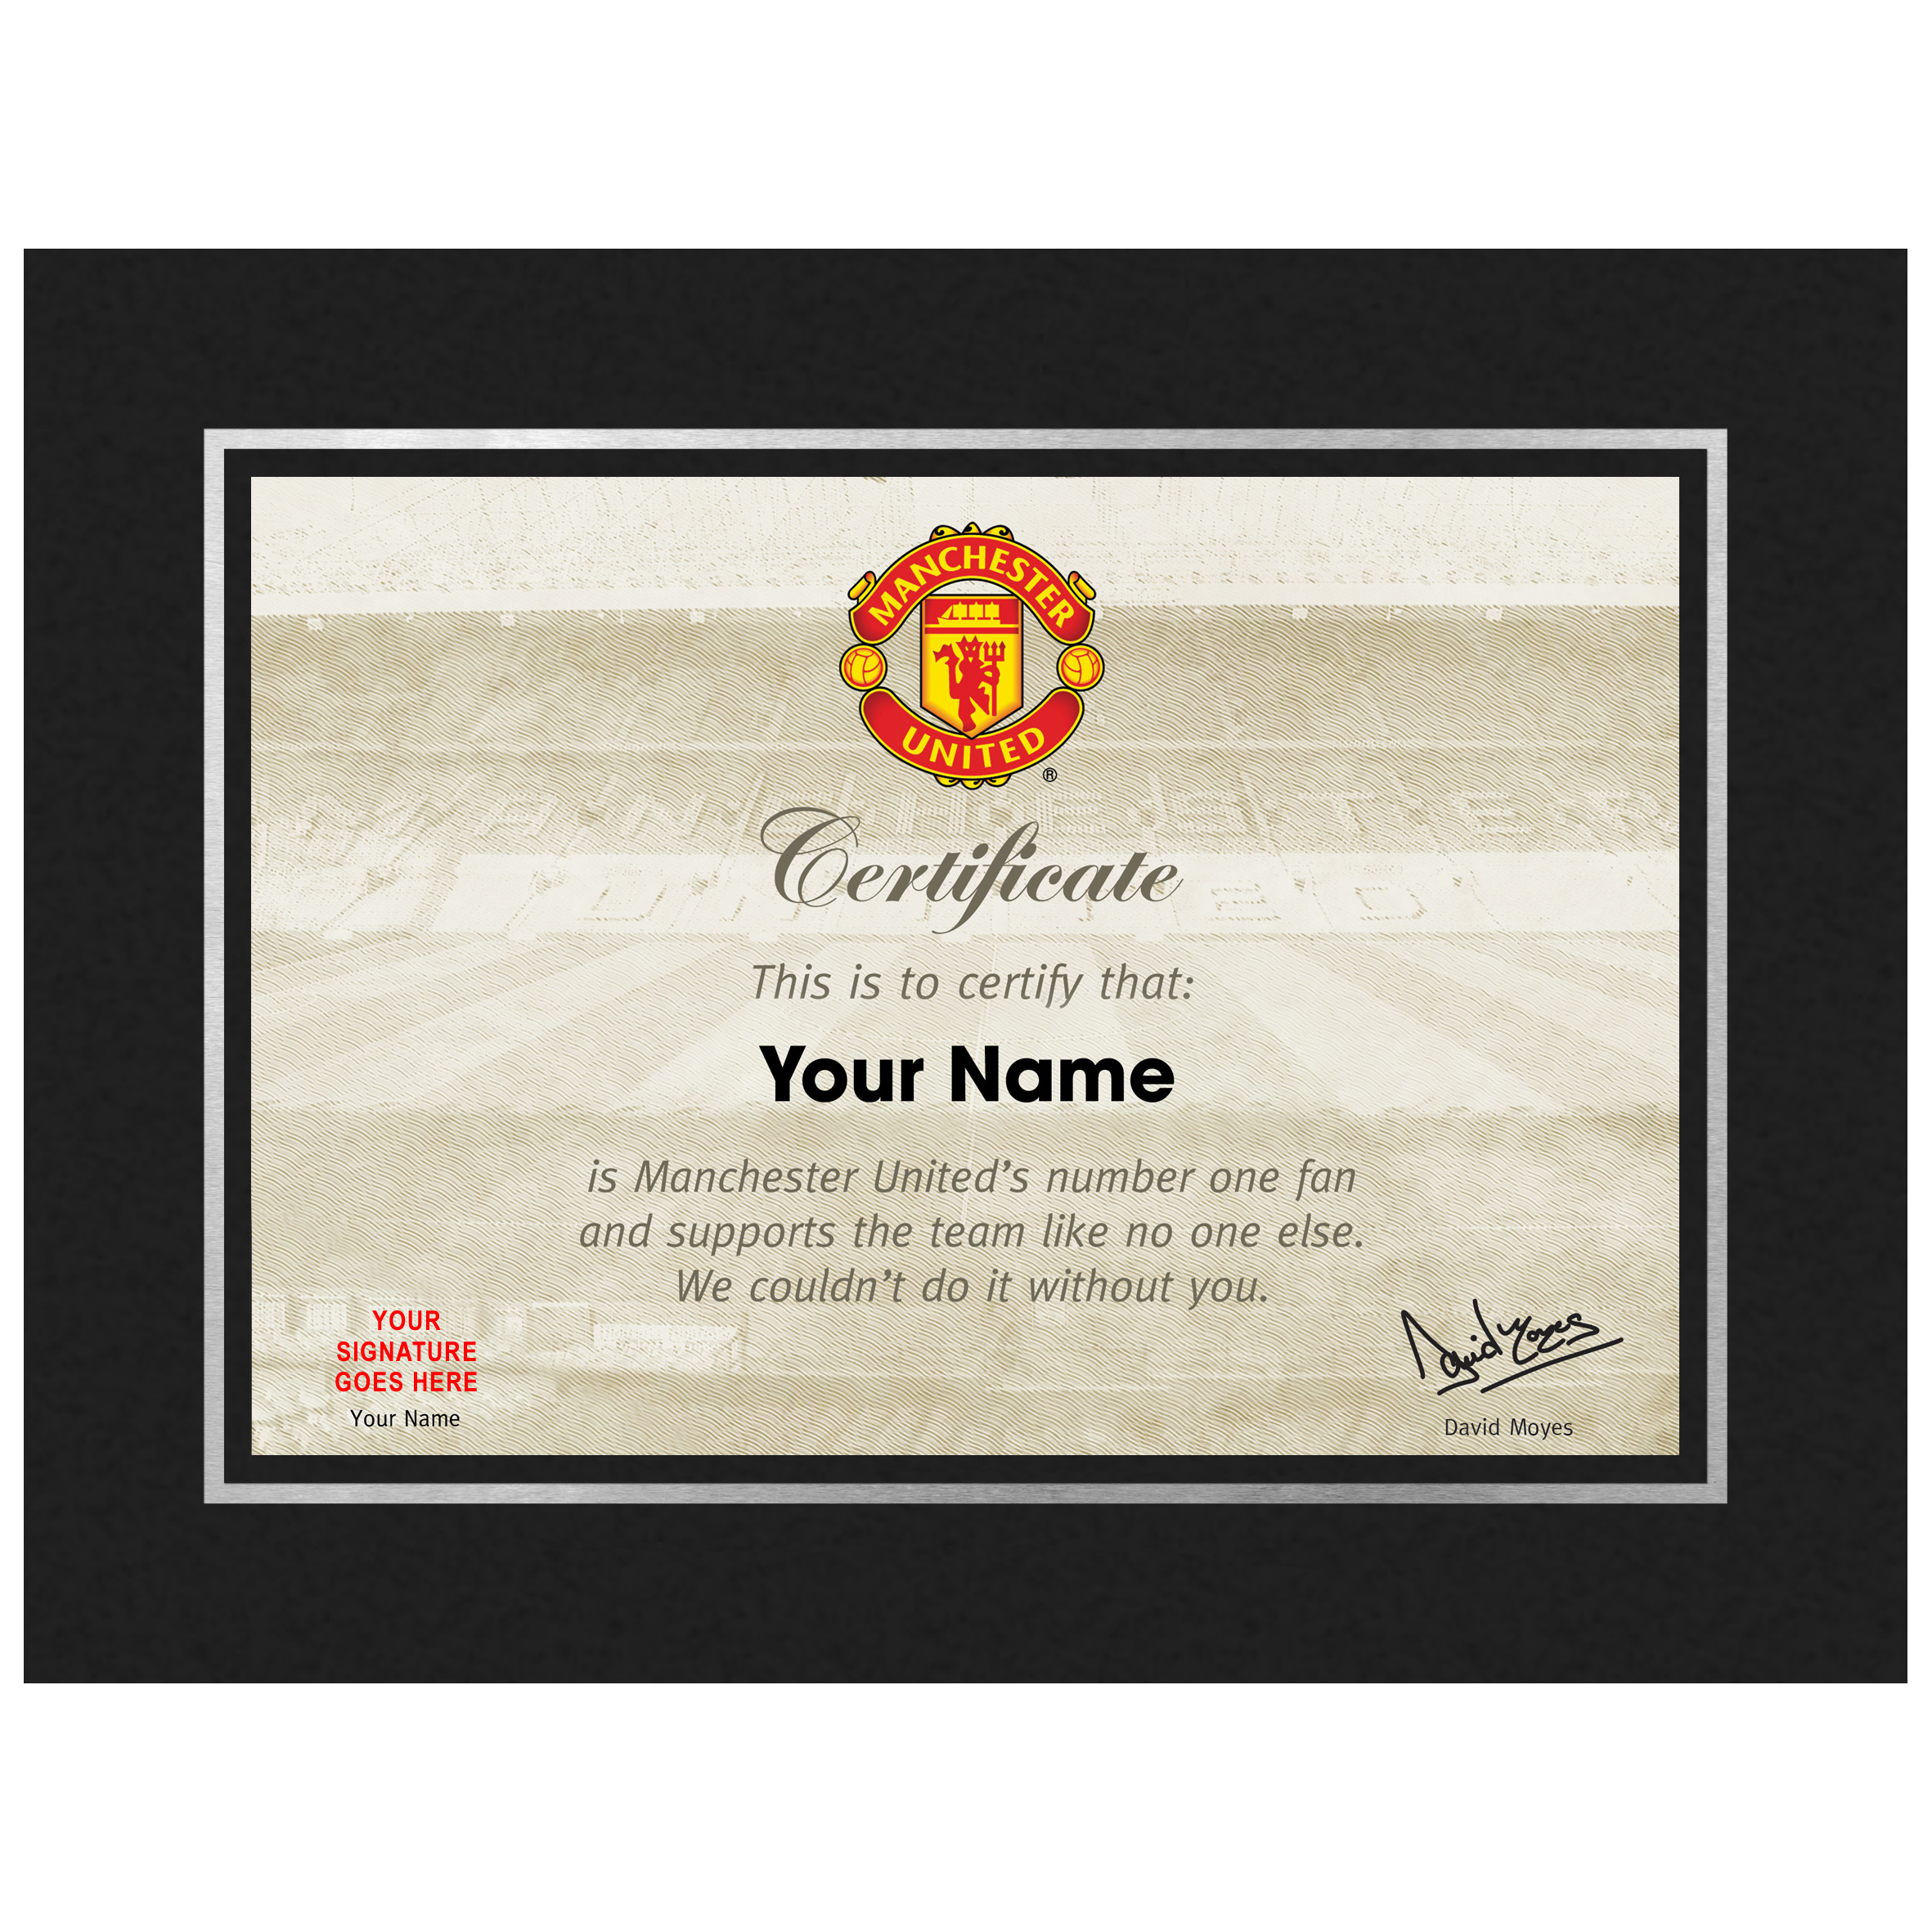 Manchester United Personalised No 1 Fan Certificate in Freestanding Strut Mount